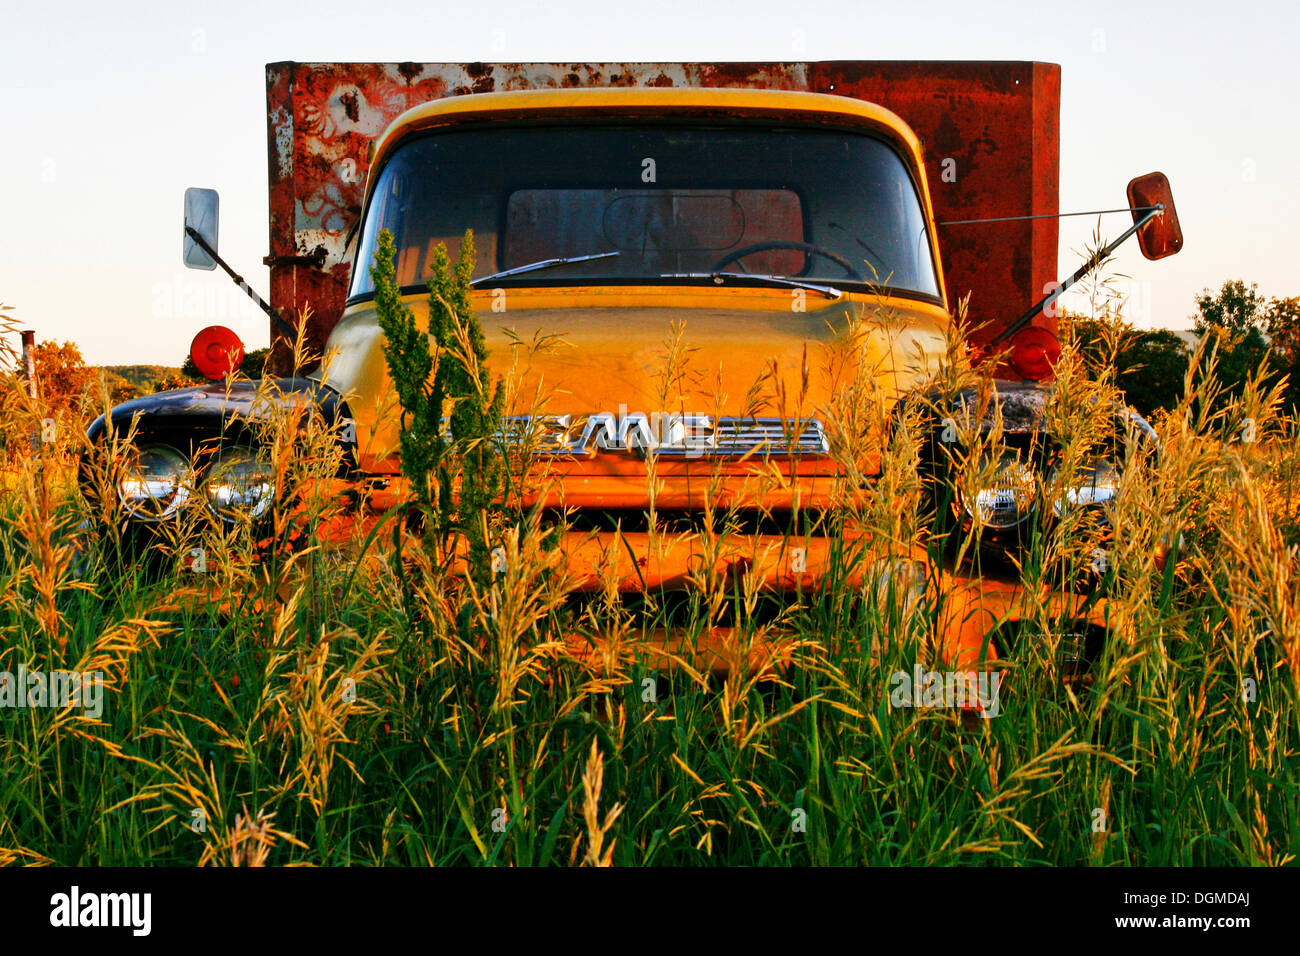 An old rusty unused truck by General Motors Canada, Manitoba, Canada - Stock Image